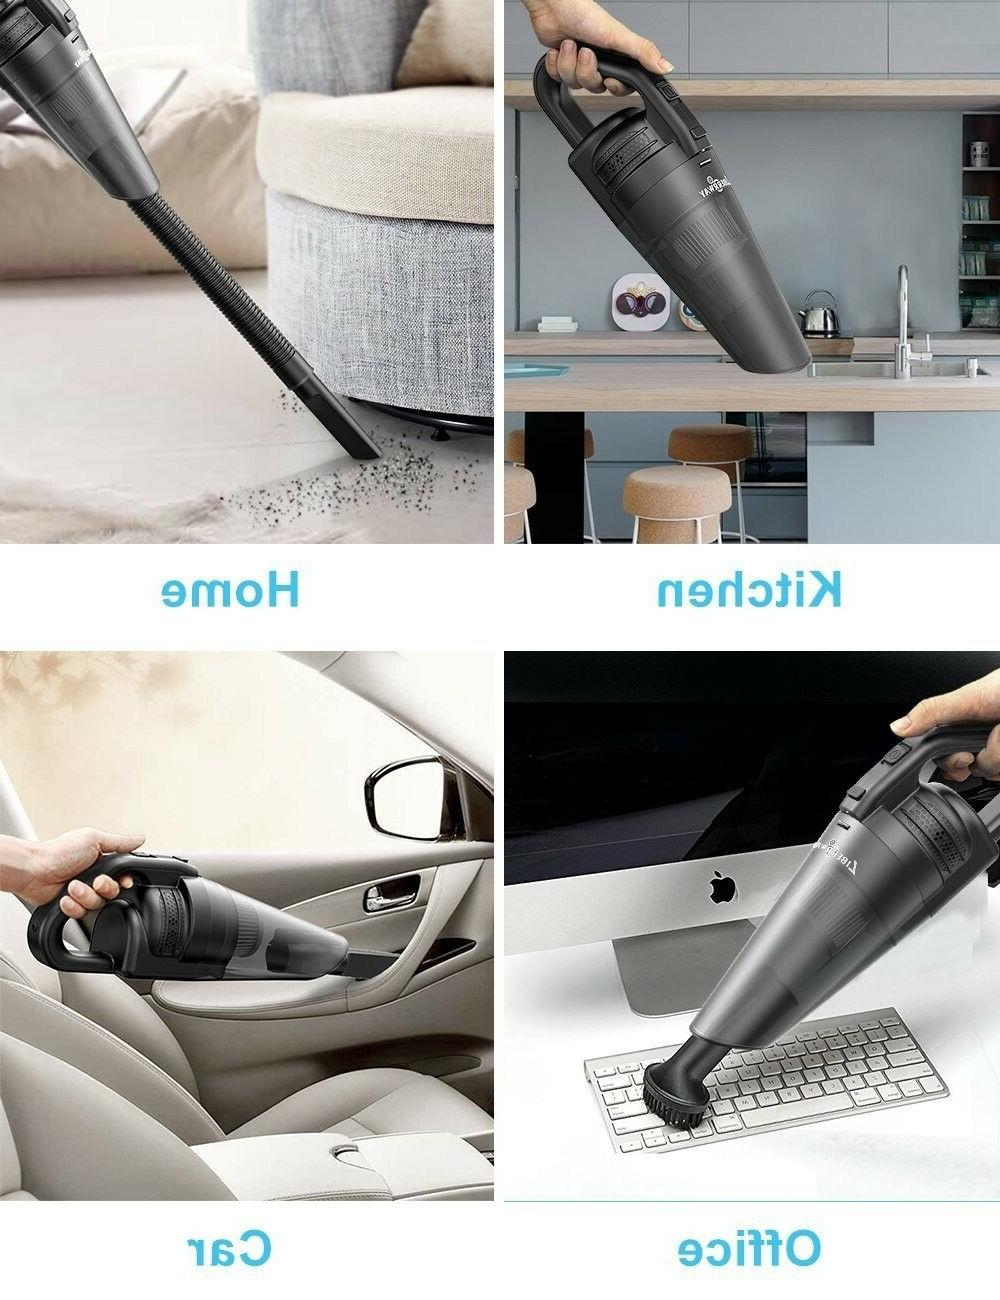 rechargeable lightweight cord free dust busters